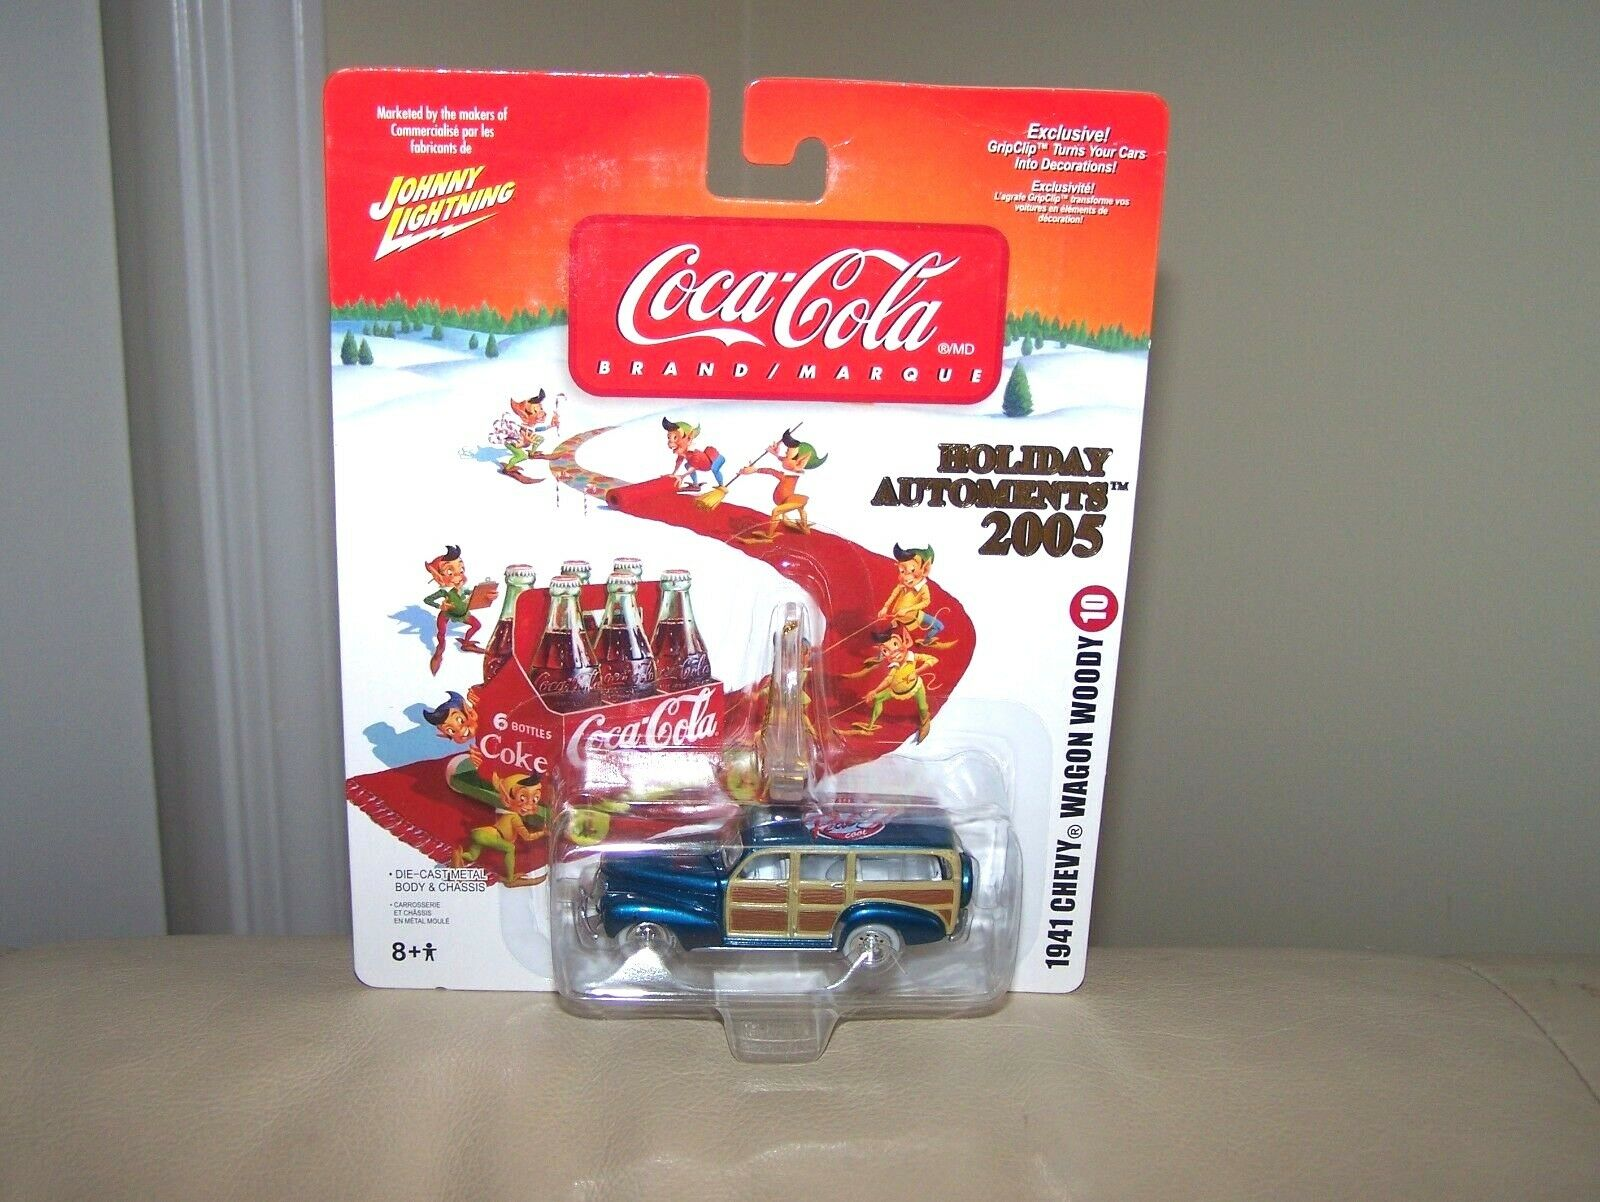 2005-Johnny bianca Lightning Coca Cola - Chevy-Vagón Woody-como Nuevo